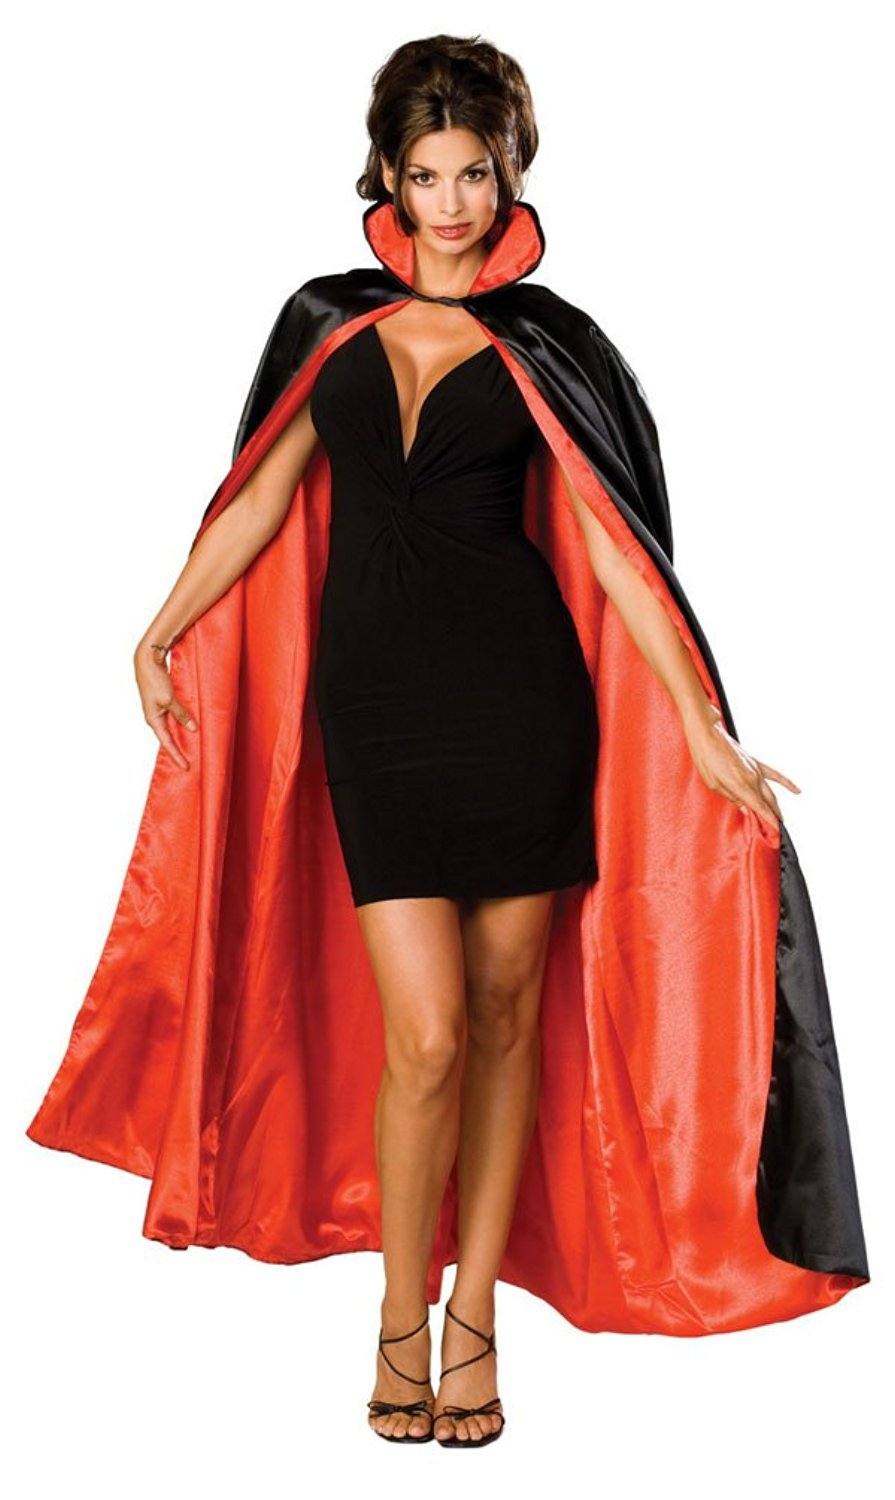 Get Quotations · Long Black Satin Cape Lined w/Red Satin - Adult Std.